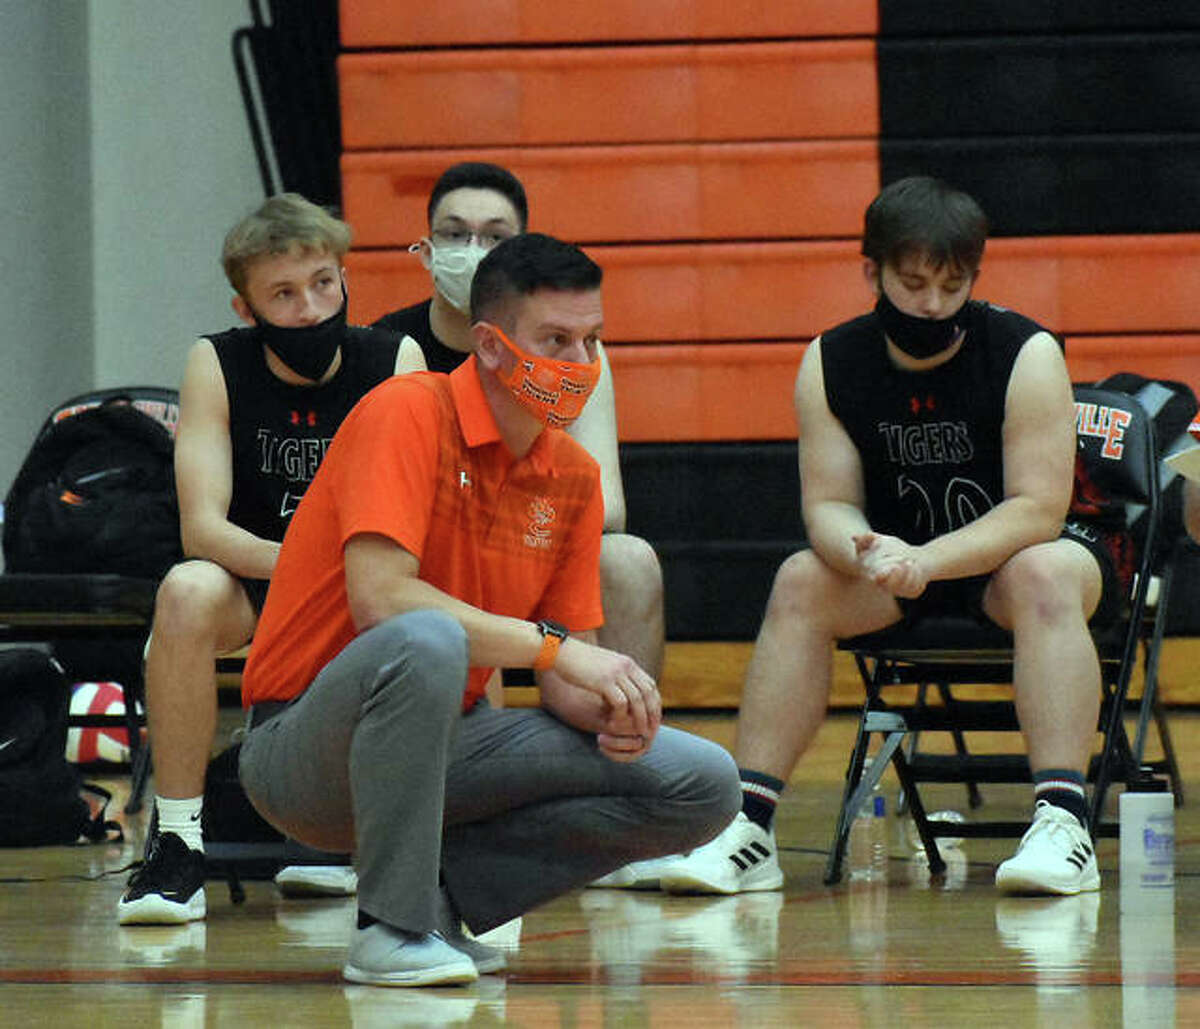 Edwardsville coach Scott Smith watches from the sideline during a match earlier in the season at Lucco-Jackson Gymnasium.